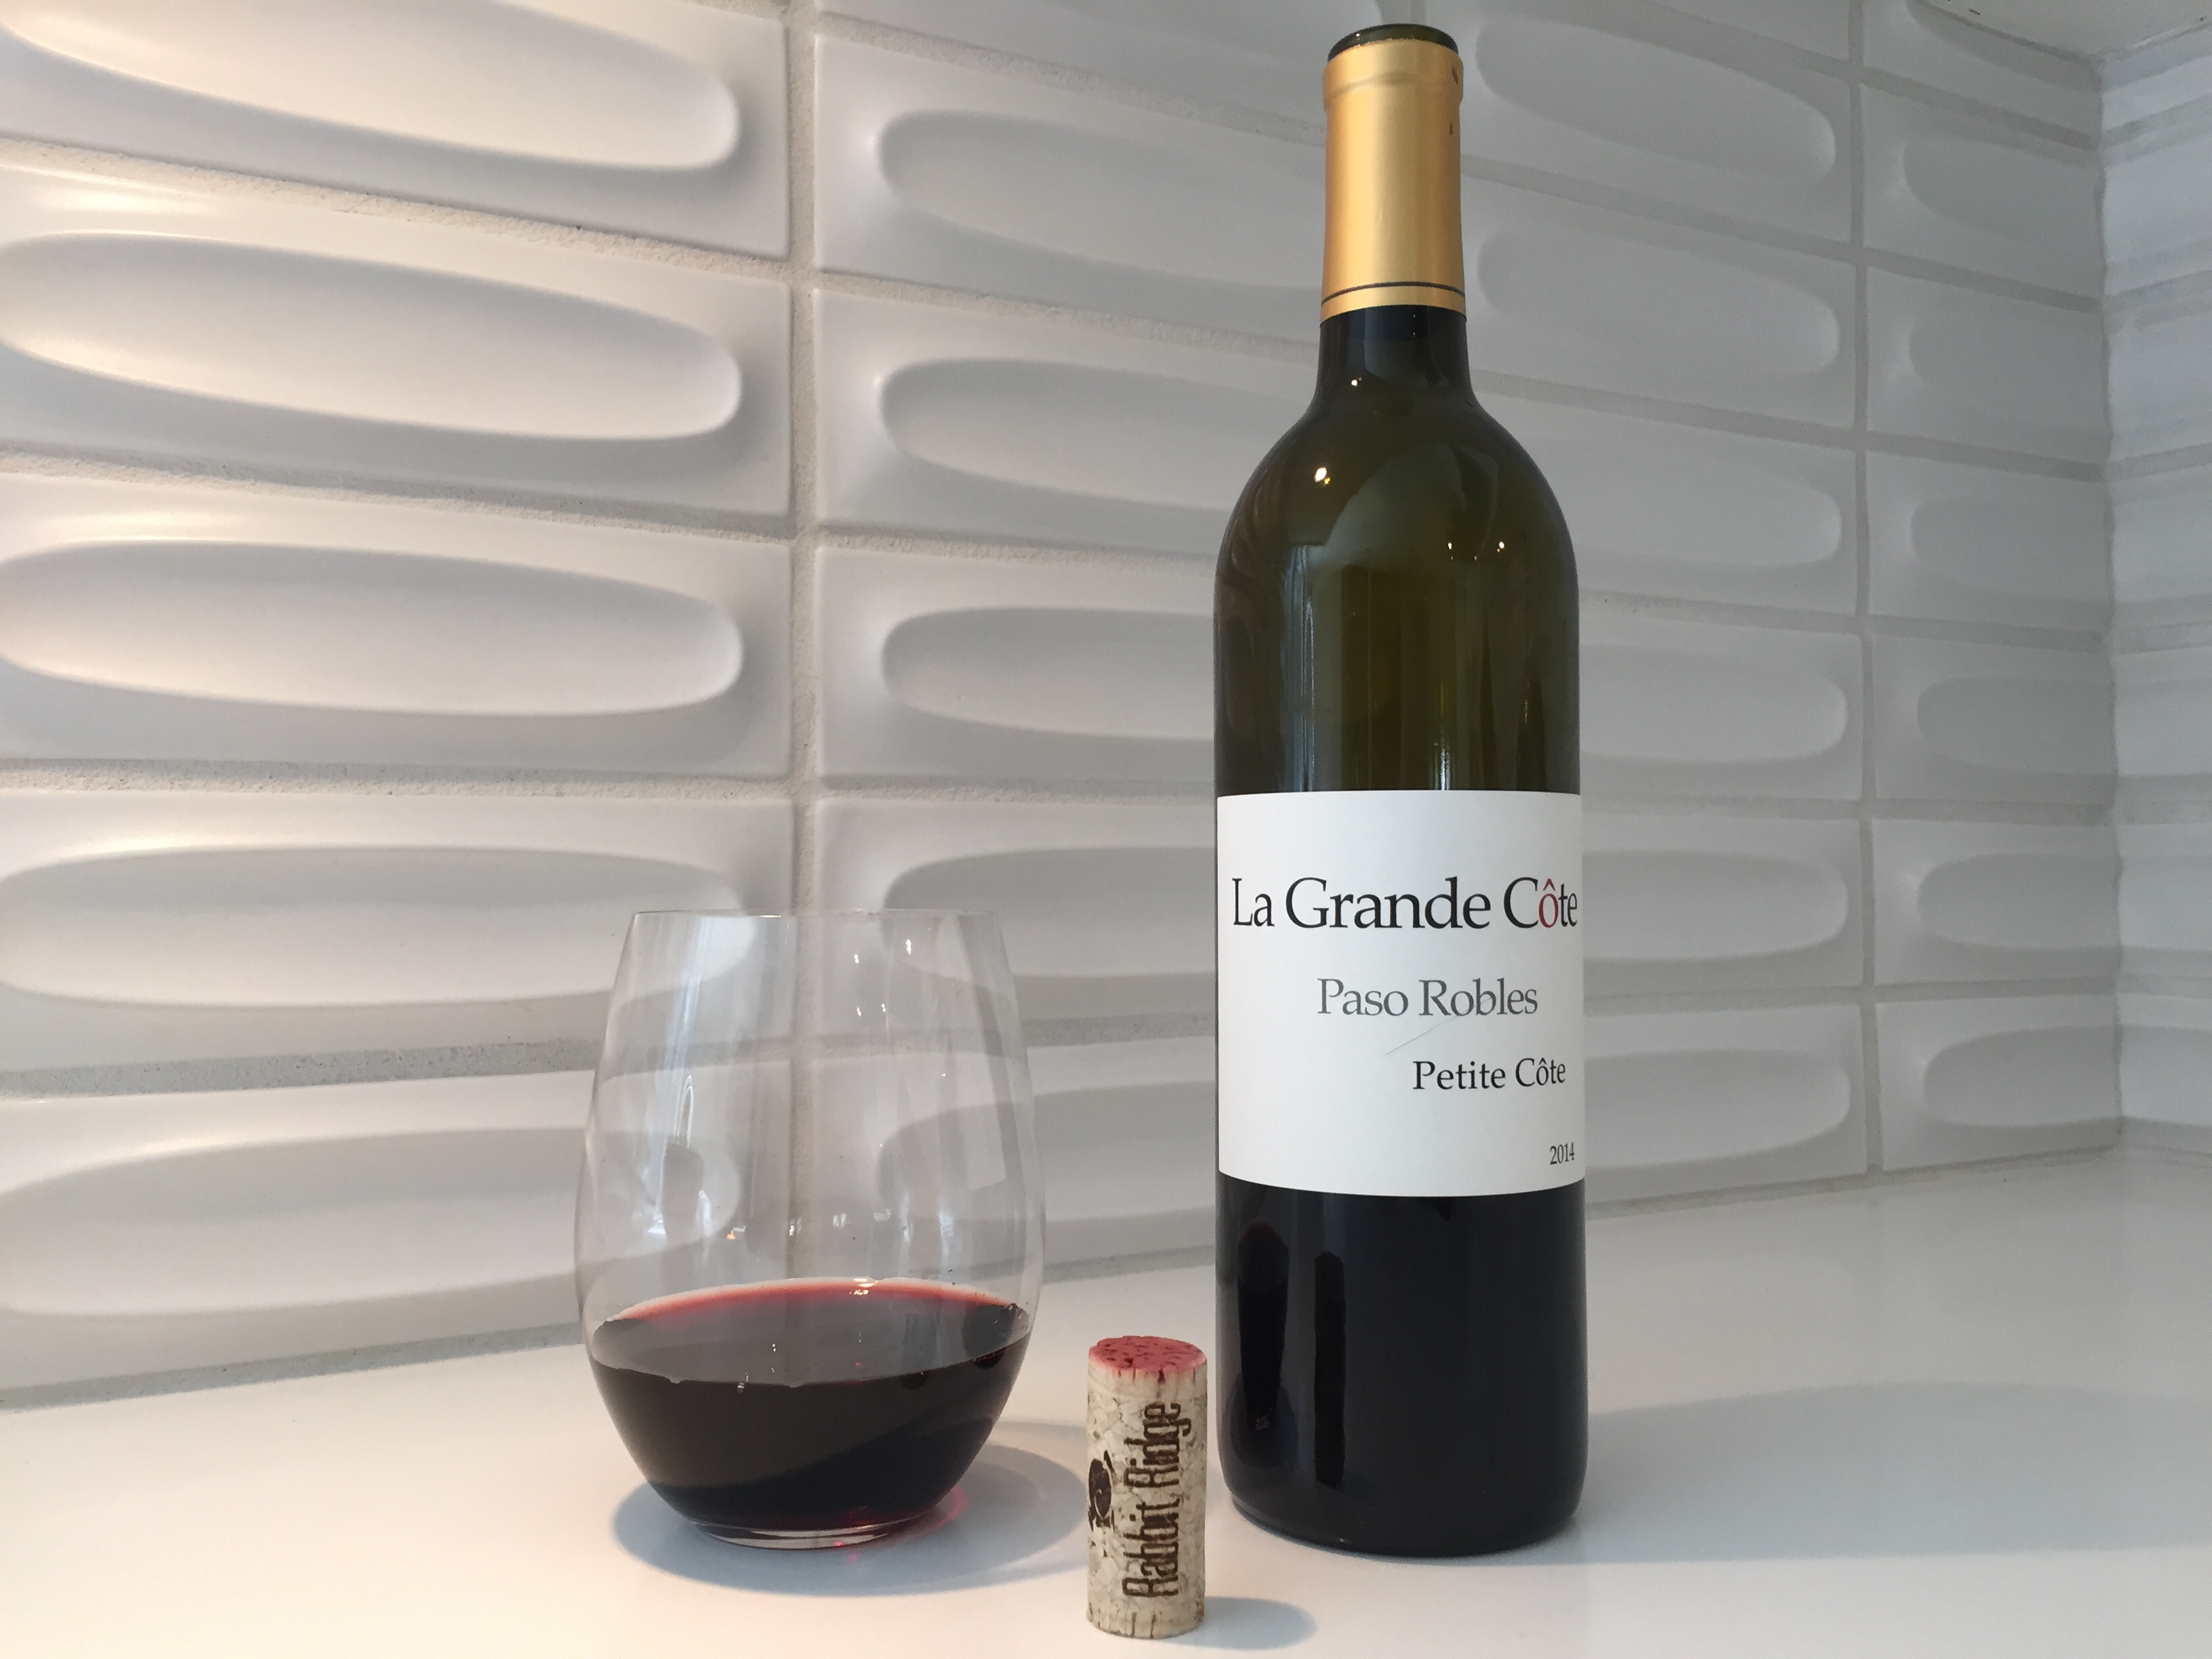 2014 La Grande Cote Red Blend, Paso Robles, California